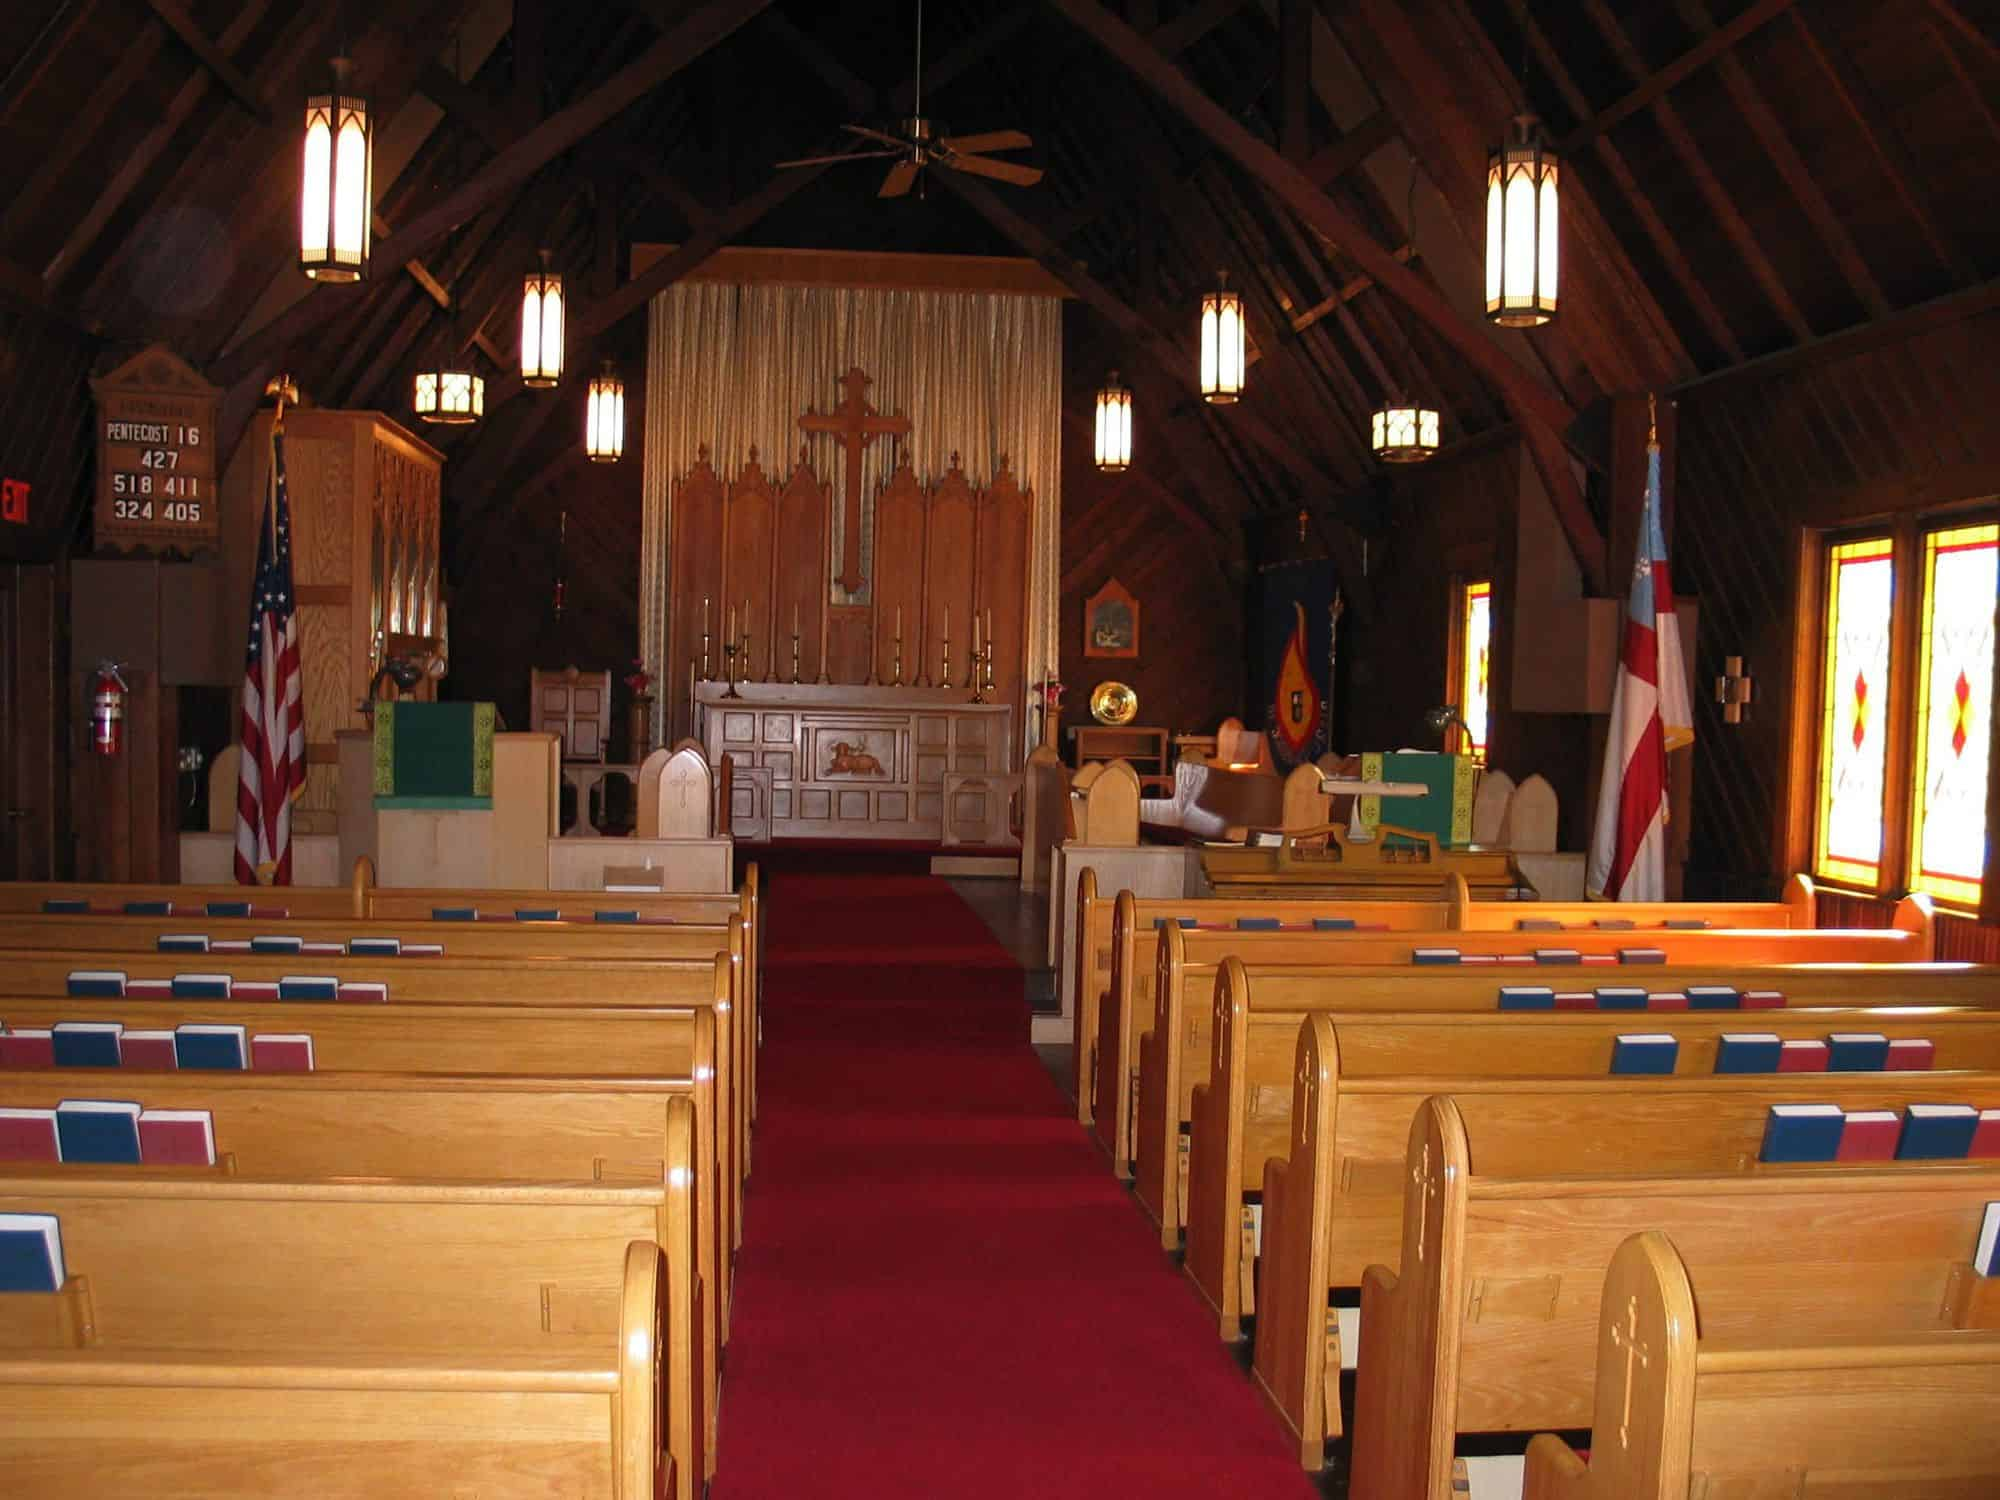 St. James the Apostle, Coquille, seeks a full-time Vicar